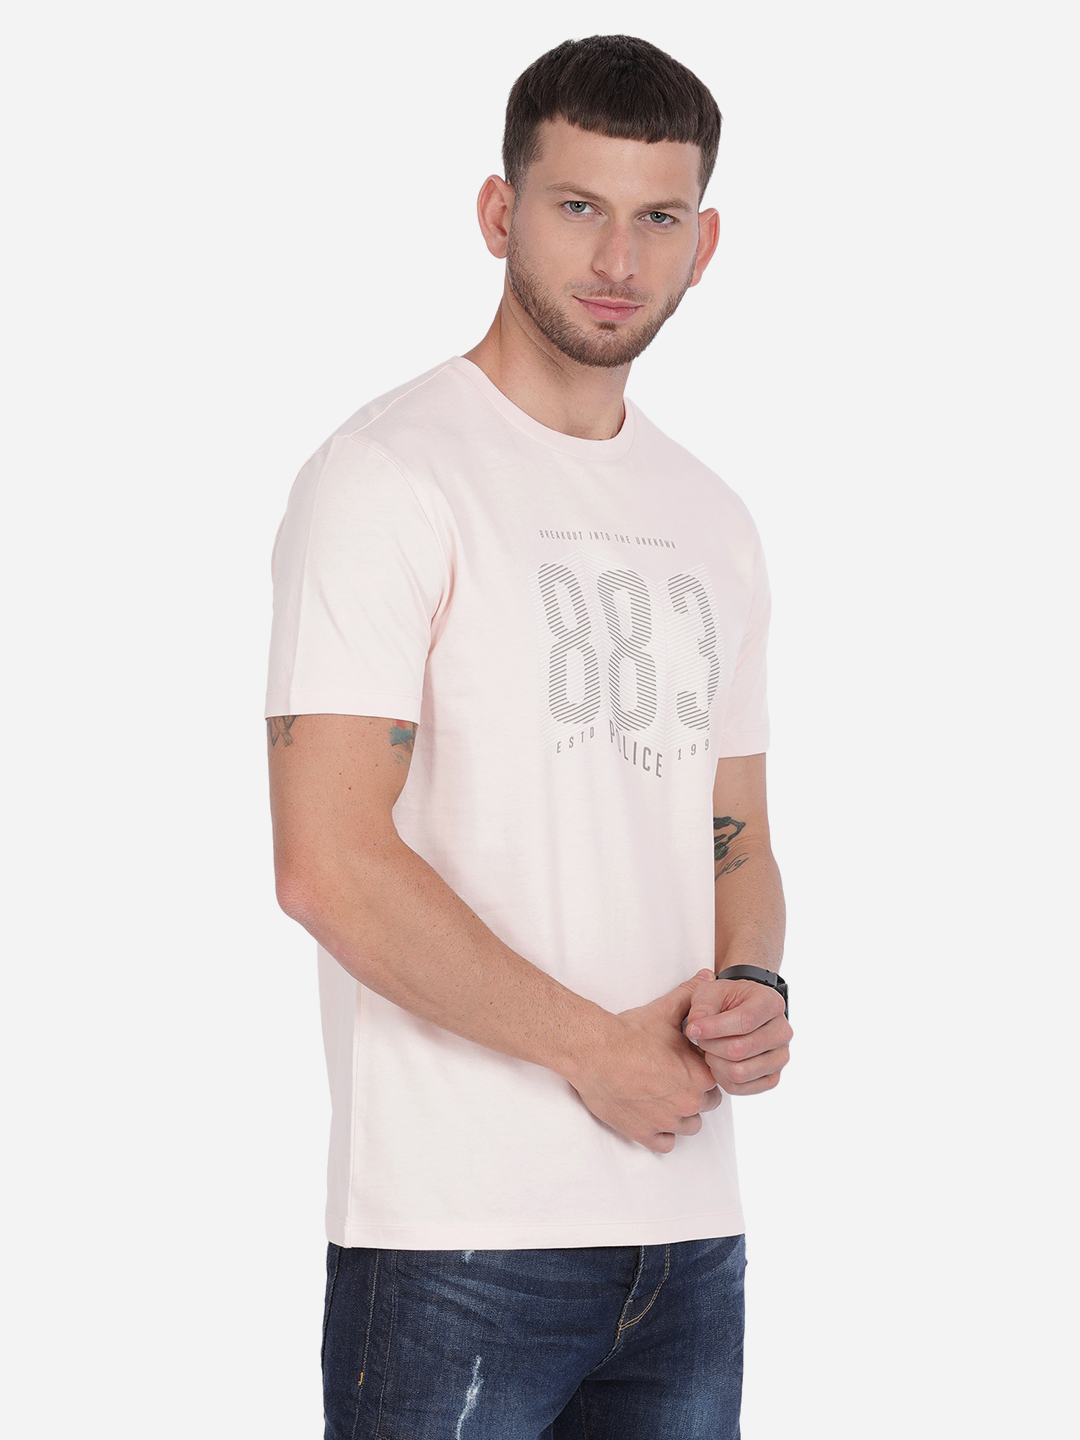 883 Police   883 Police Tonewite India T-shirt